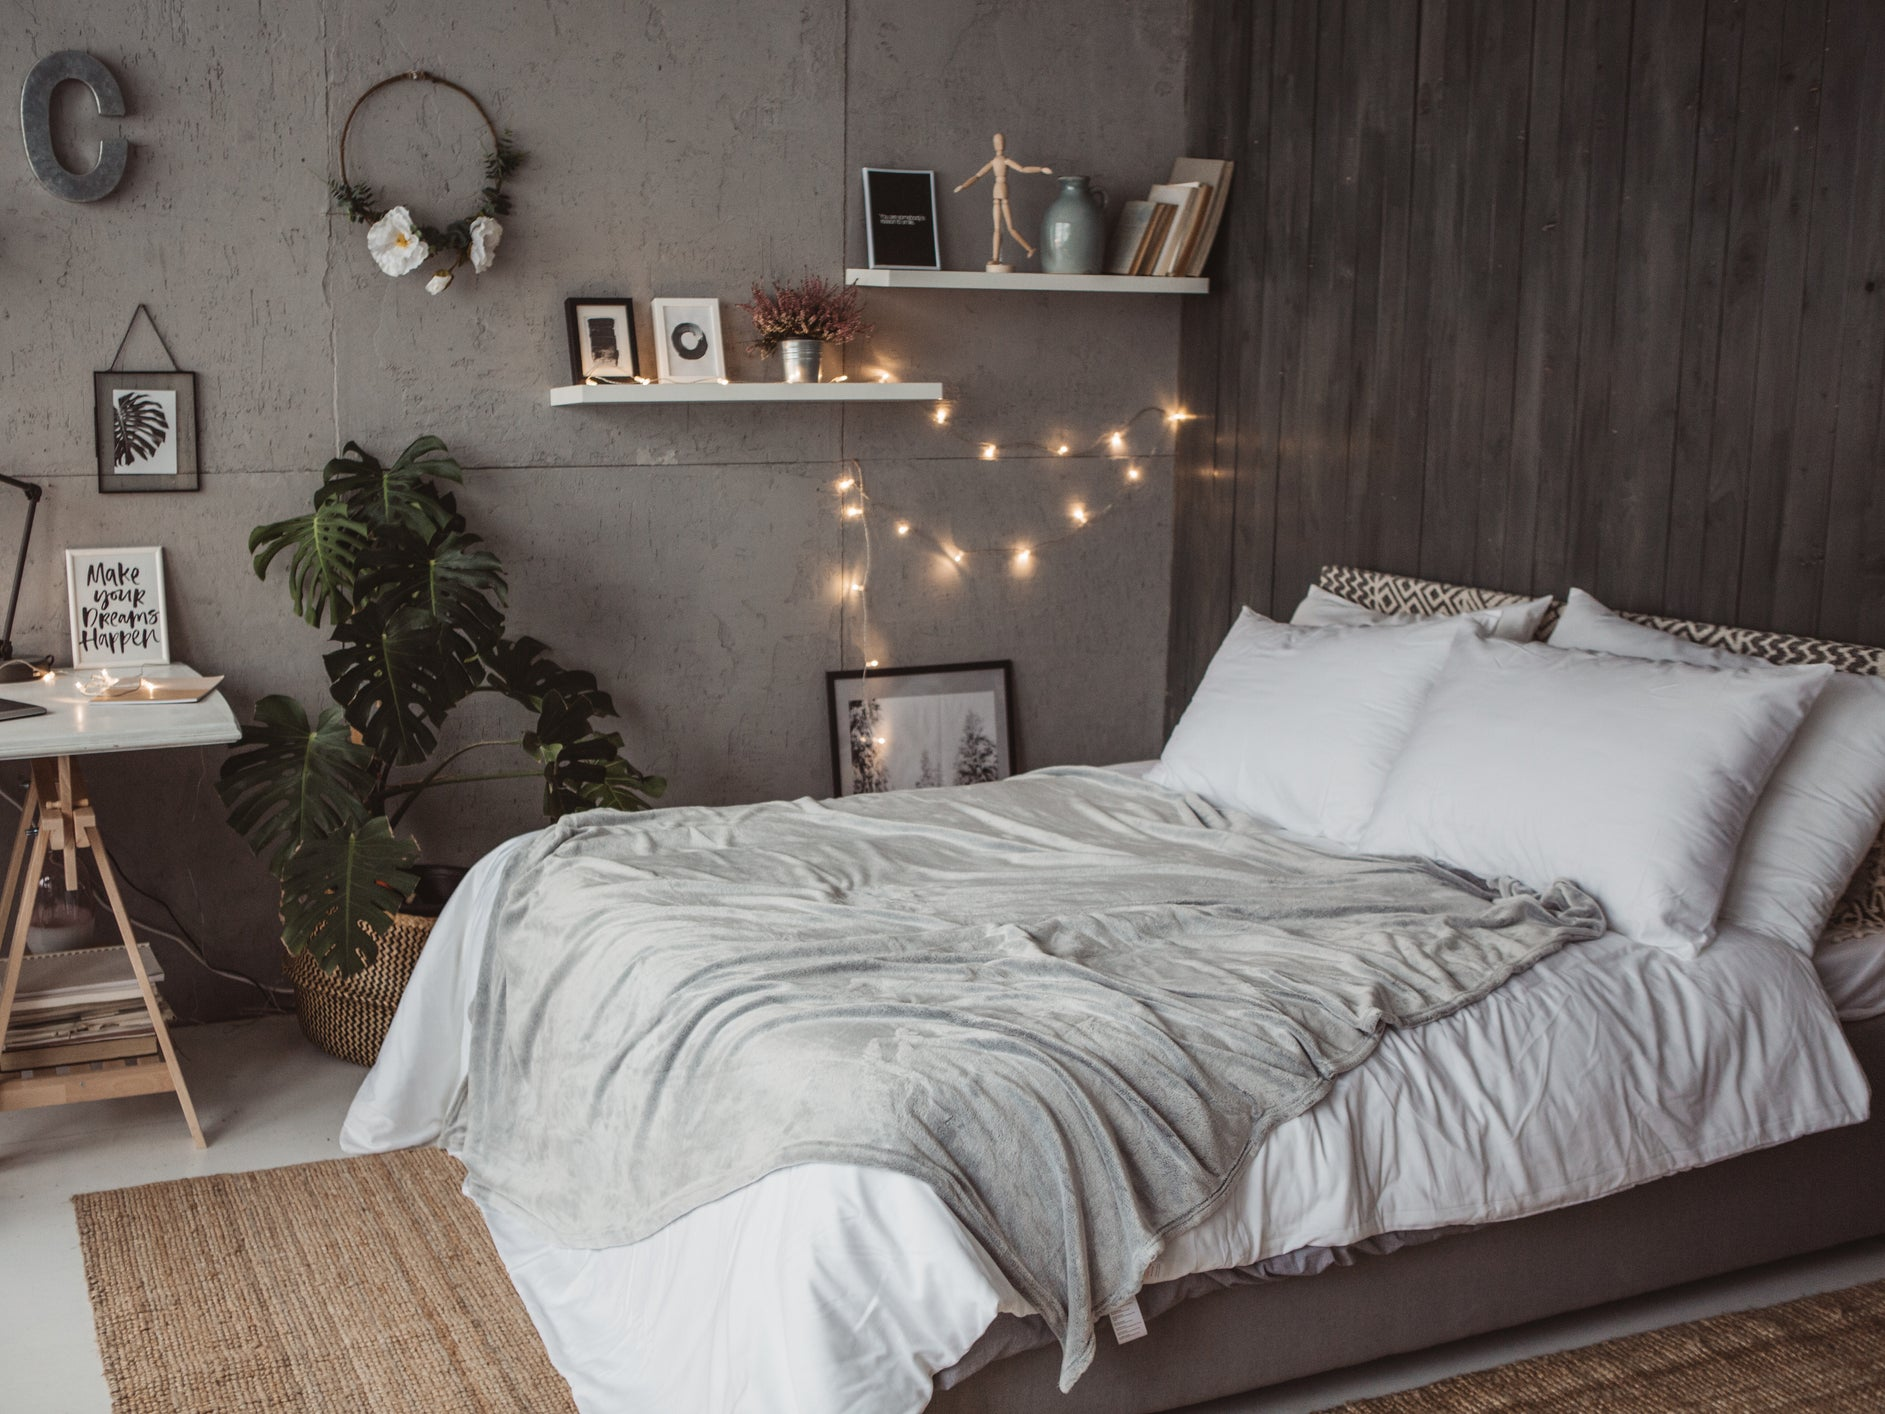 Bedrooms Without Windows Is It Right For You Millionacres